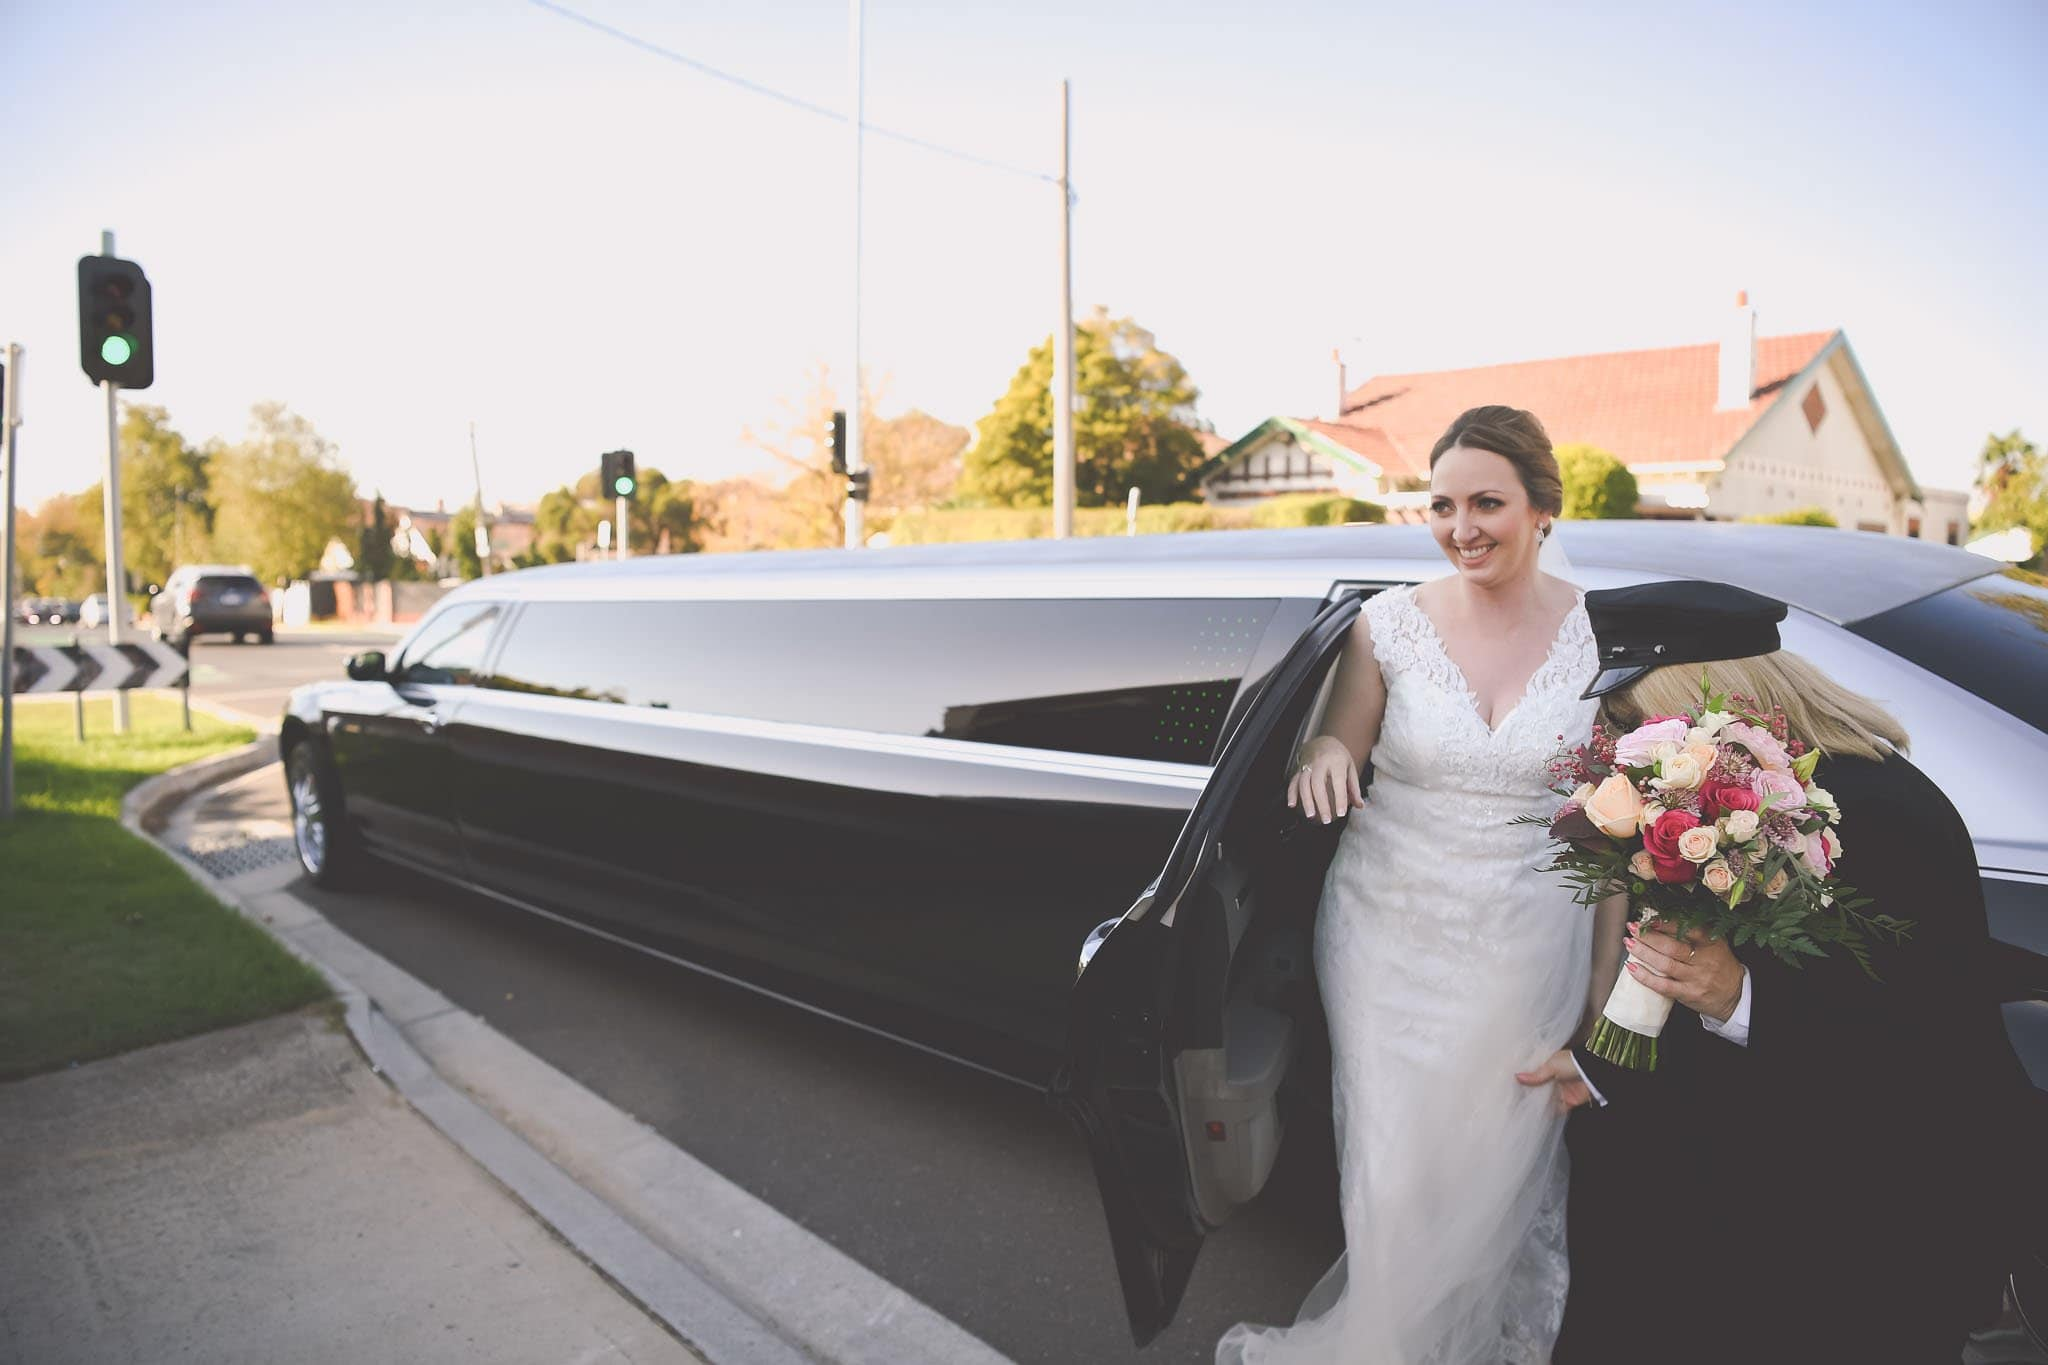 Melbourne wedding photography of the bride getting out of her limousine